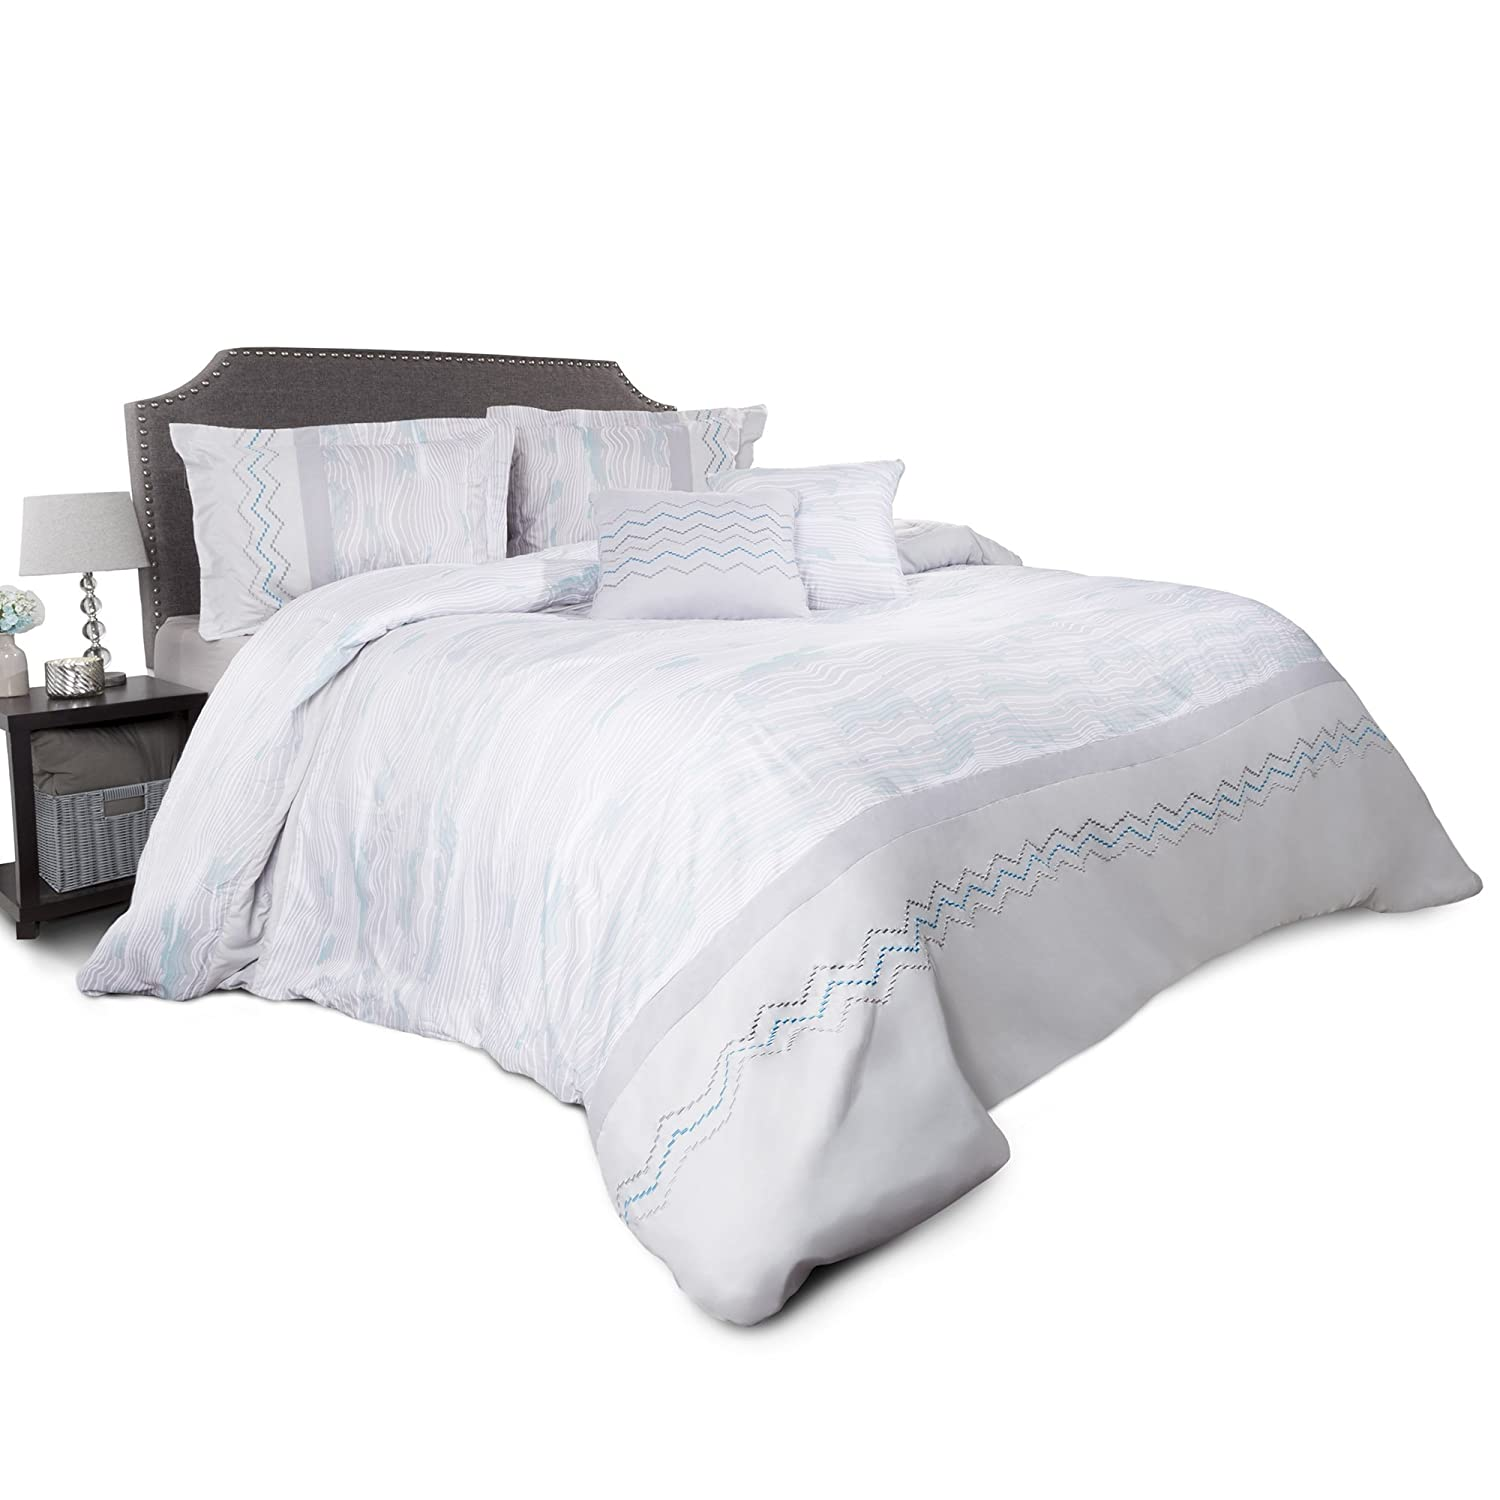 5 Piece King Bedding Set With 2 Decorative Pillows Comforter Set King Size, Gray 2 Shams and Whimsical Chevron Design By Bedford Home